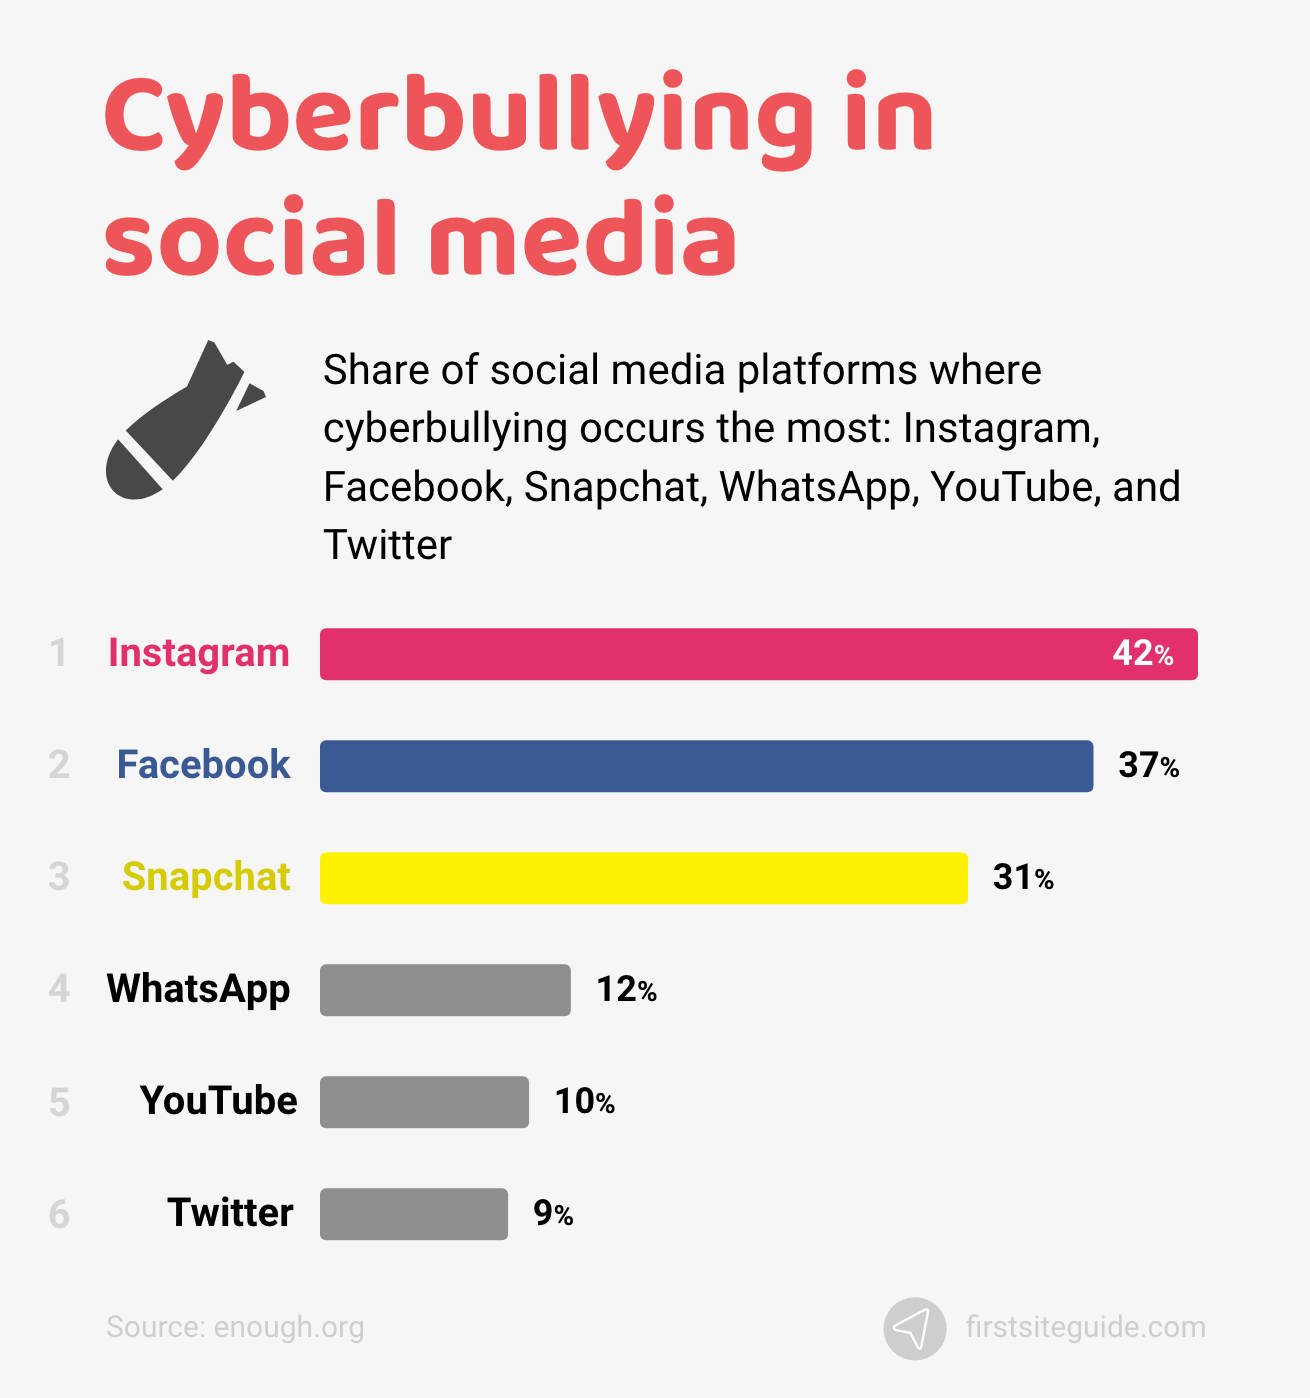 Cyberbullying in social media